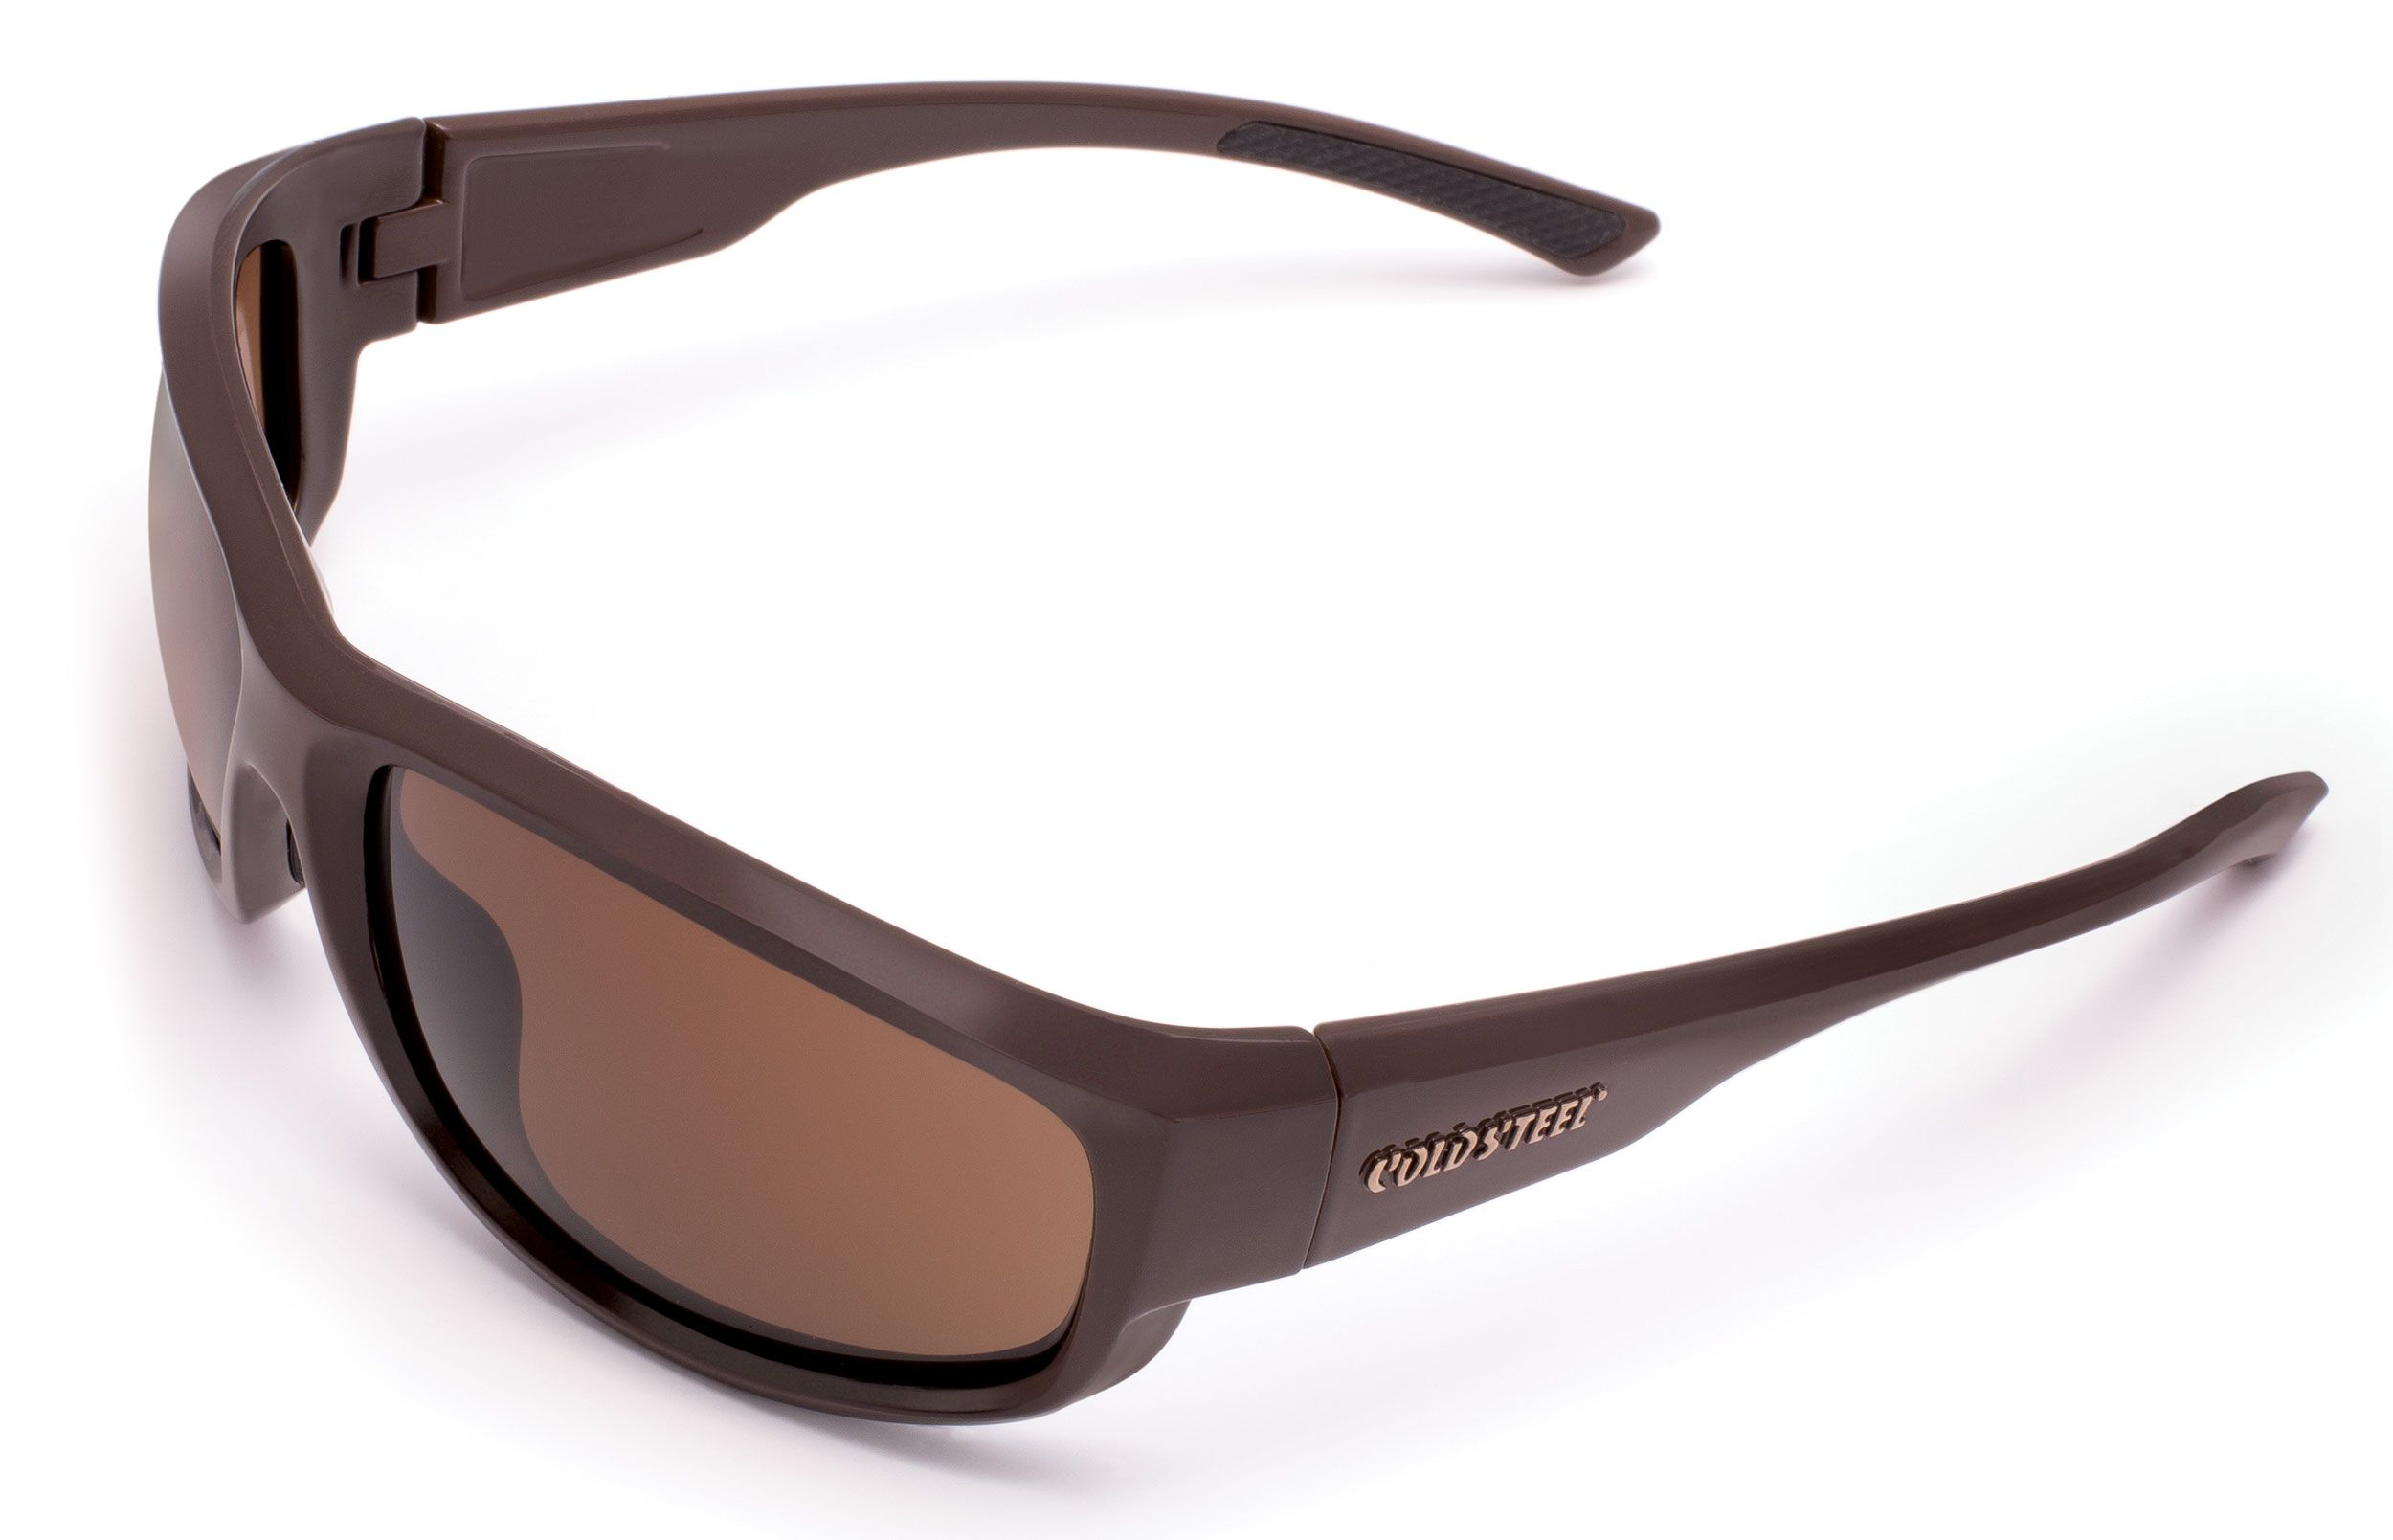 Cold Steel EW23M Battle Shades Mark-II Eyewear, Matte Brown Sunglasses